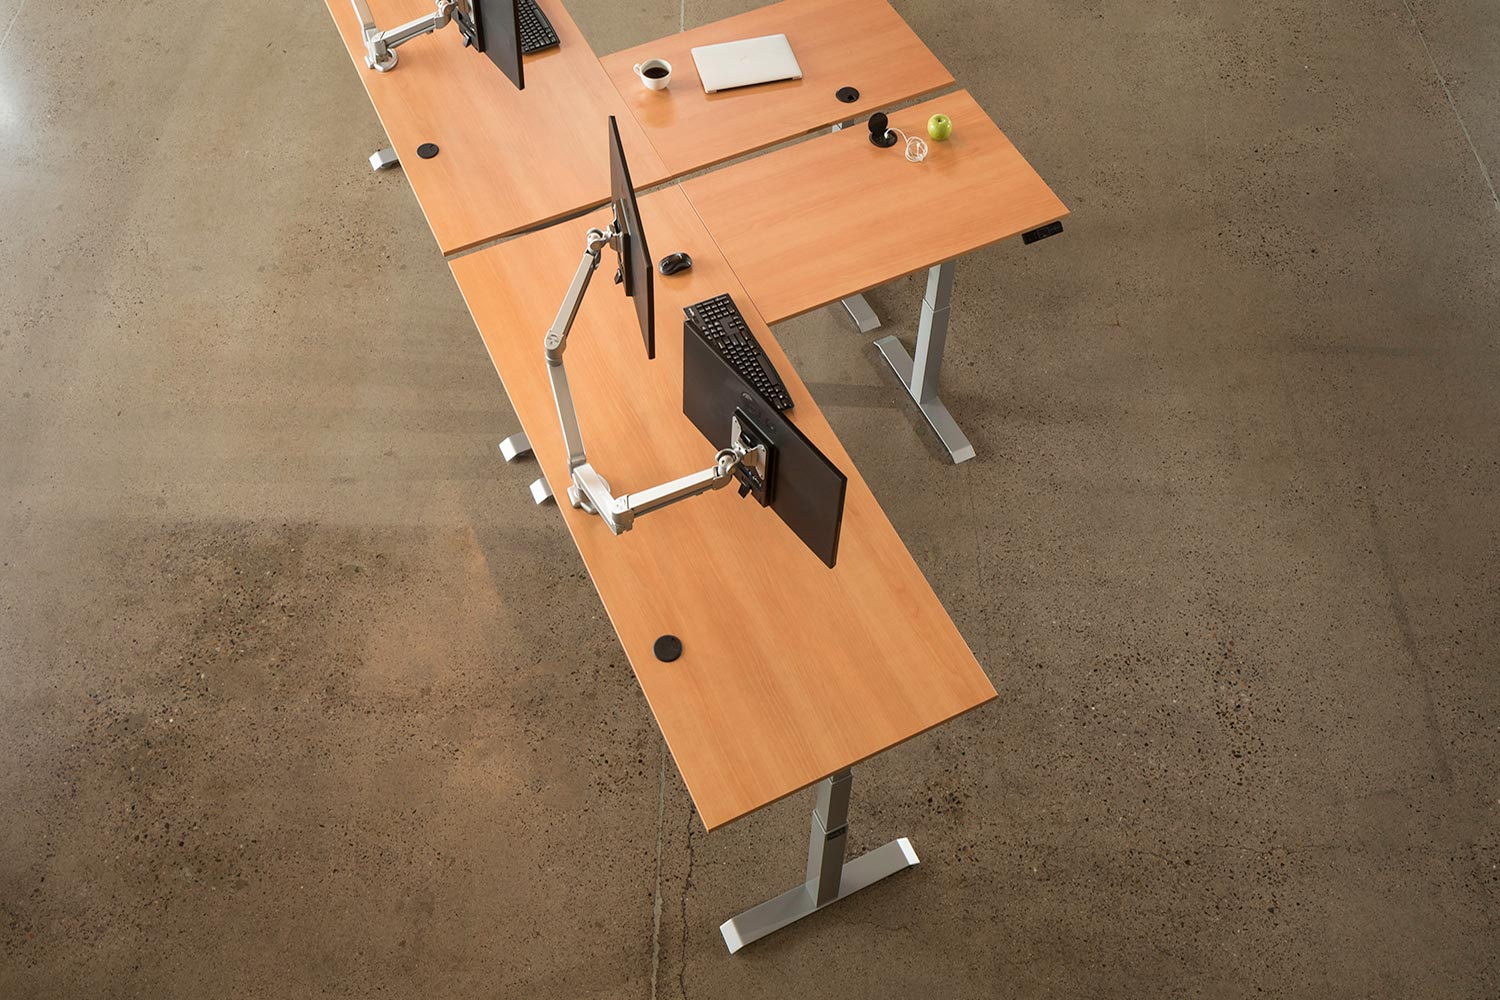 MultiTable Mod-E Pro L-Shaped Ergonomic Standing Desk Frame